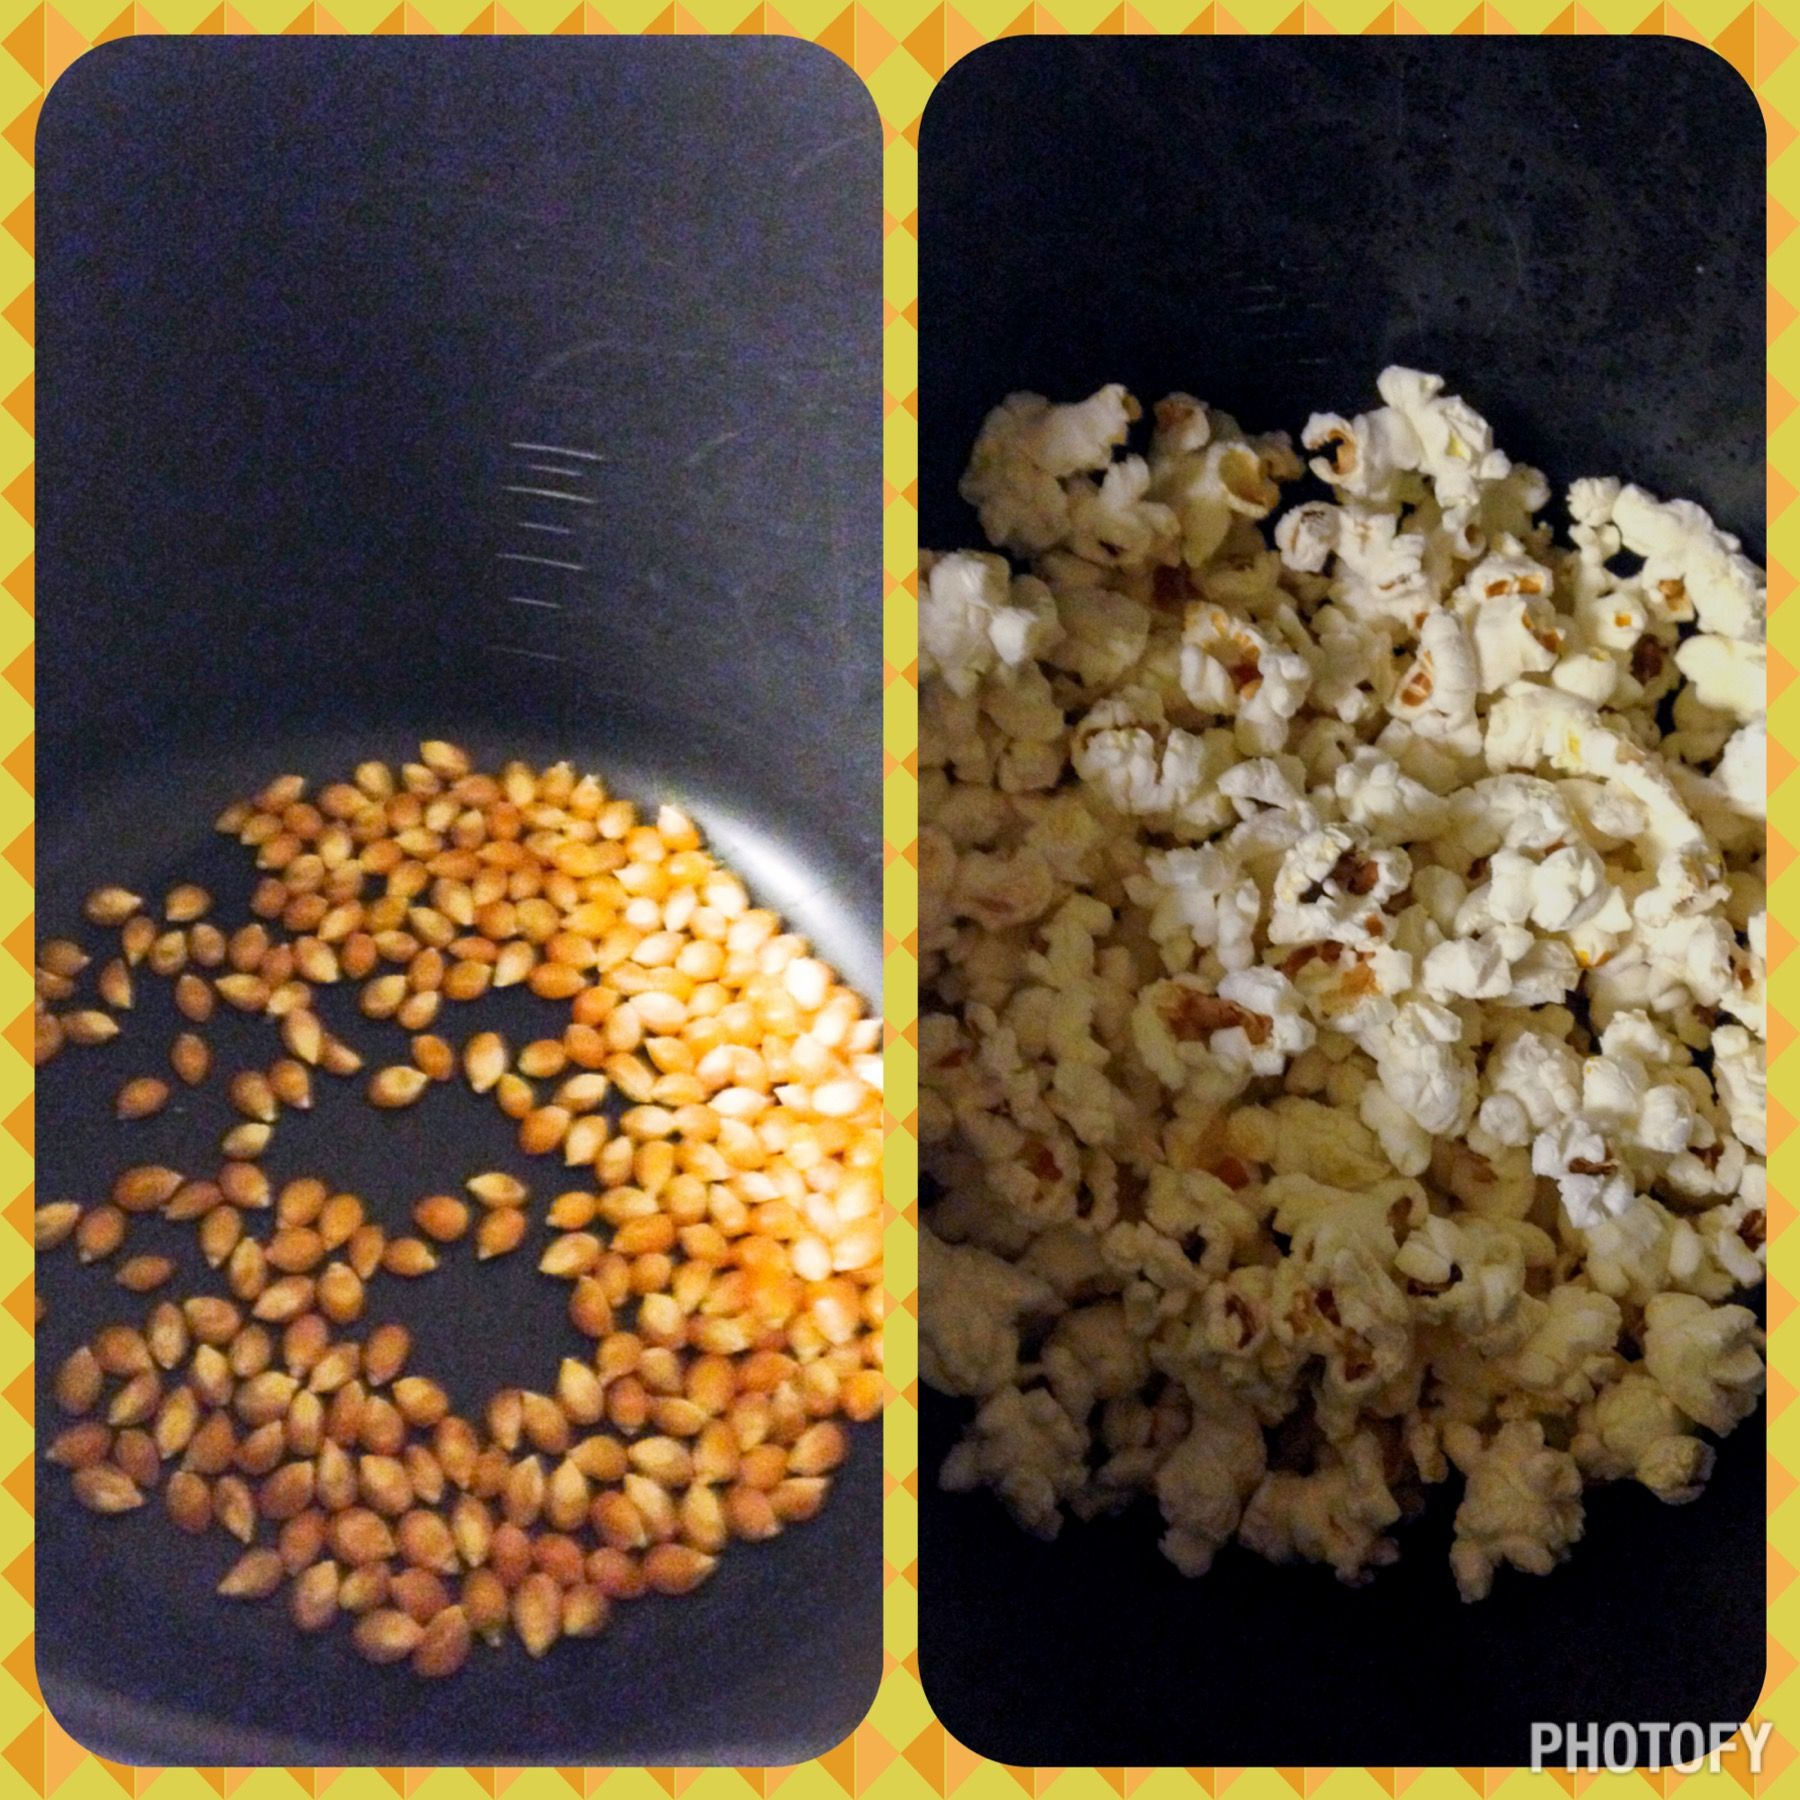 Made Air Popped Popcorn In My Pampered Chef Rice Cooker Plus Cooked